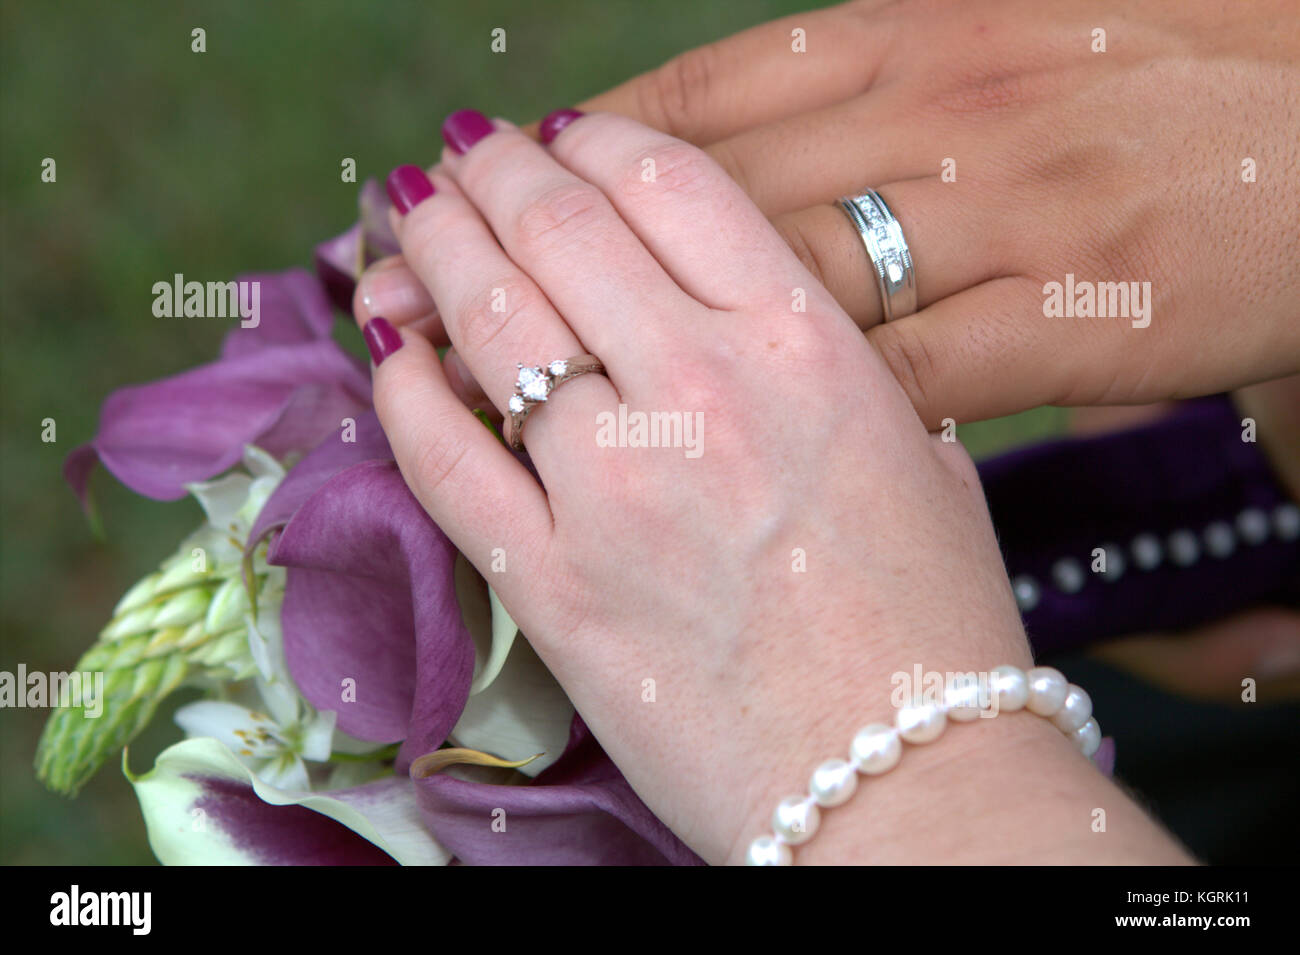 hands with his and hers wedding rings Stock Photo: 165247629 - Alamy